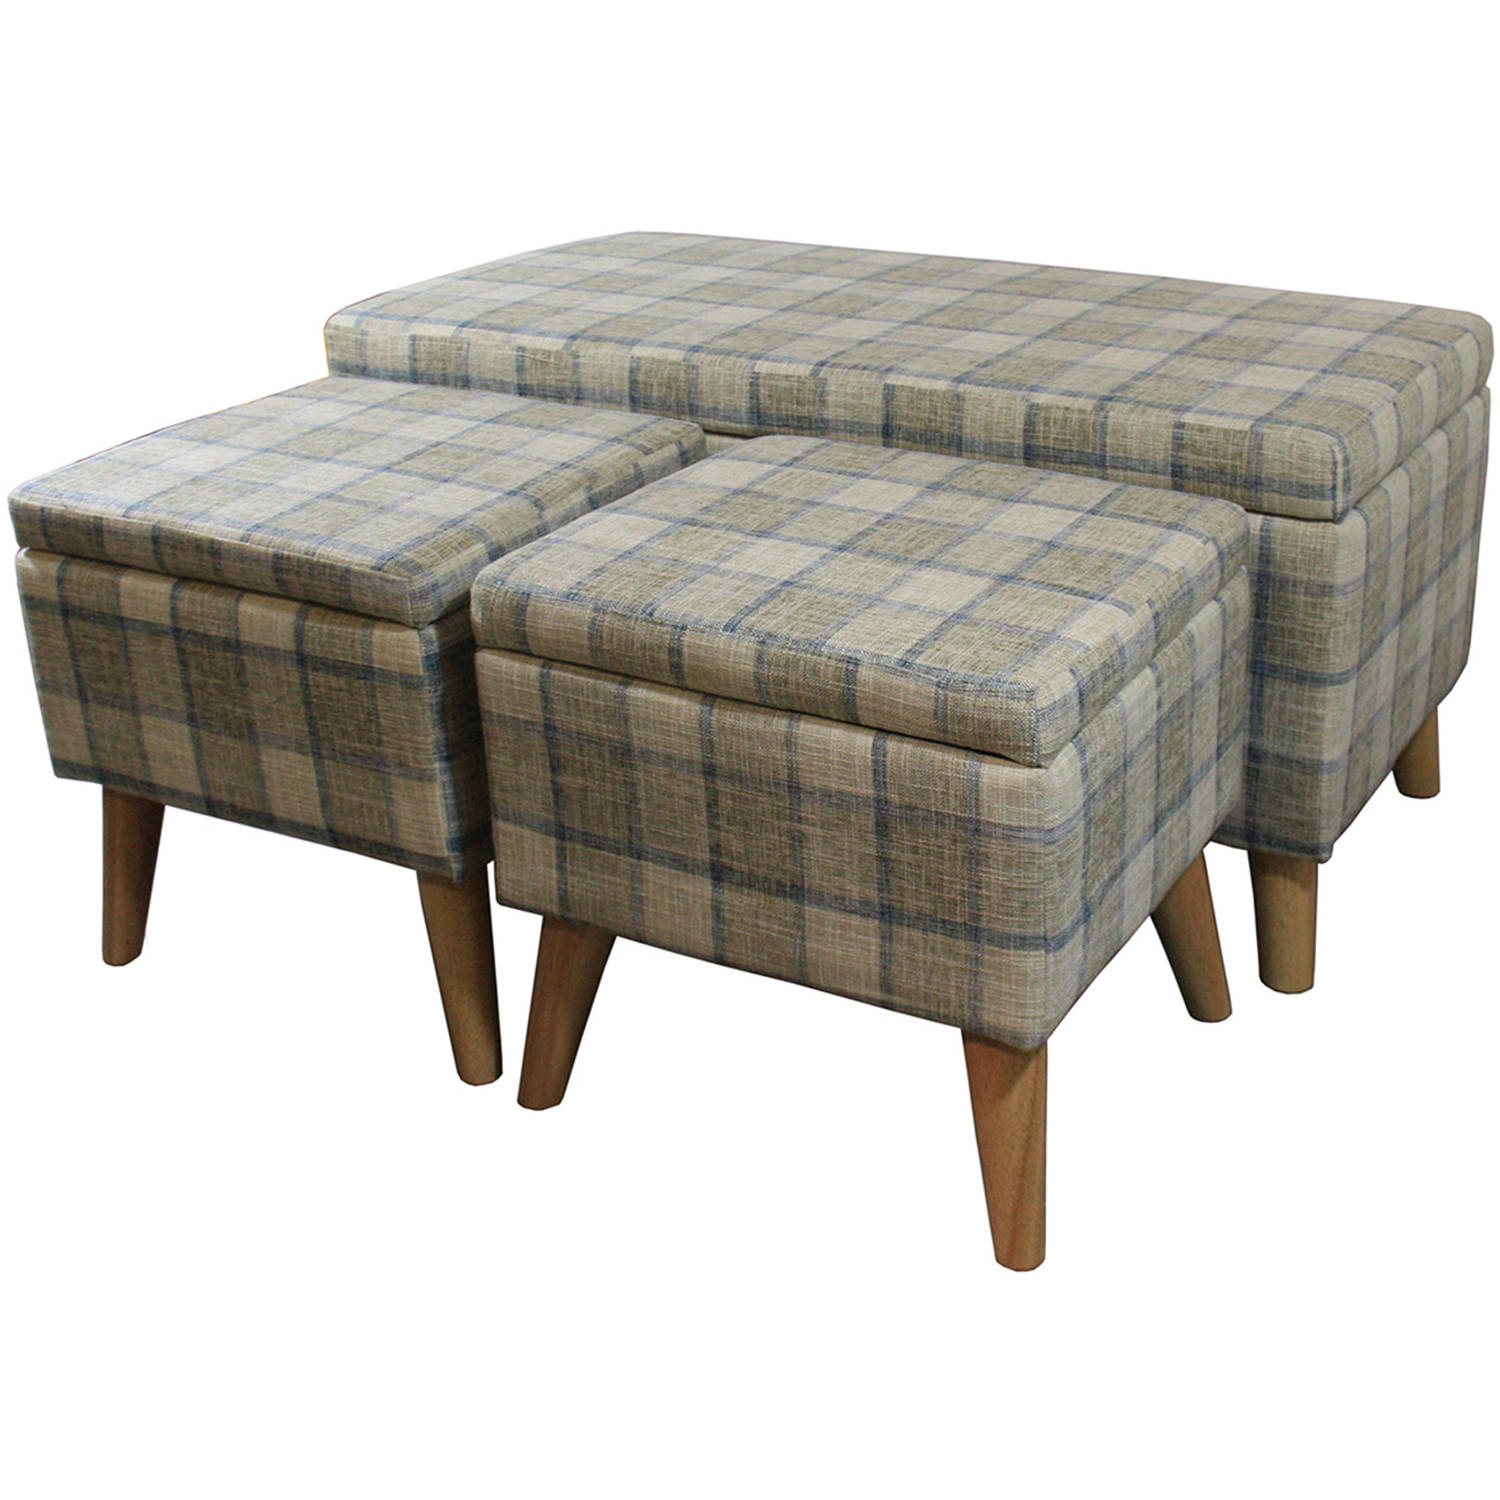 "18"" Grey Plaid Storage Bench plus 2 Storage Ottoman Seating"